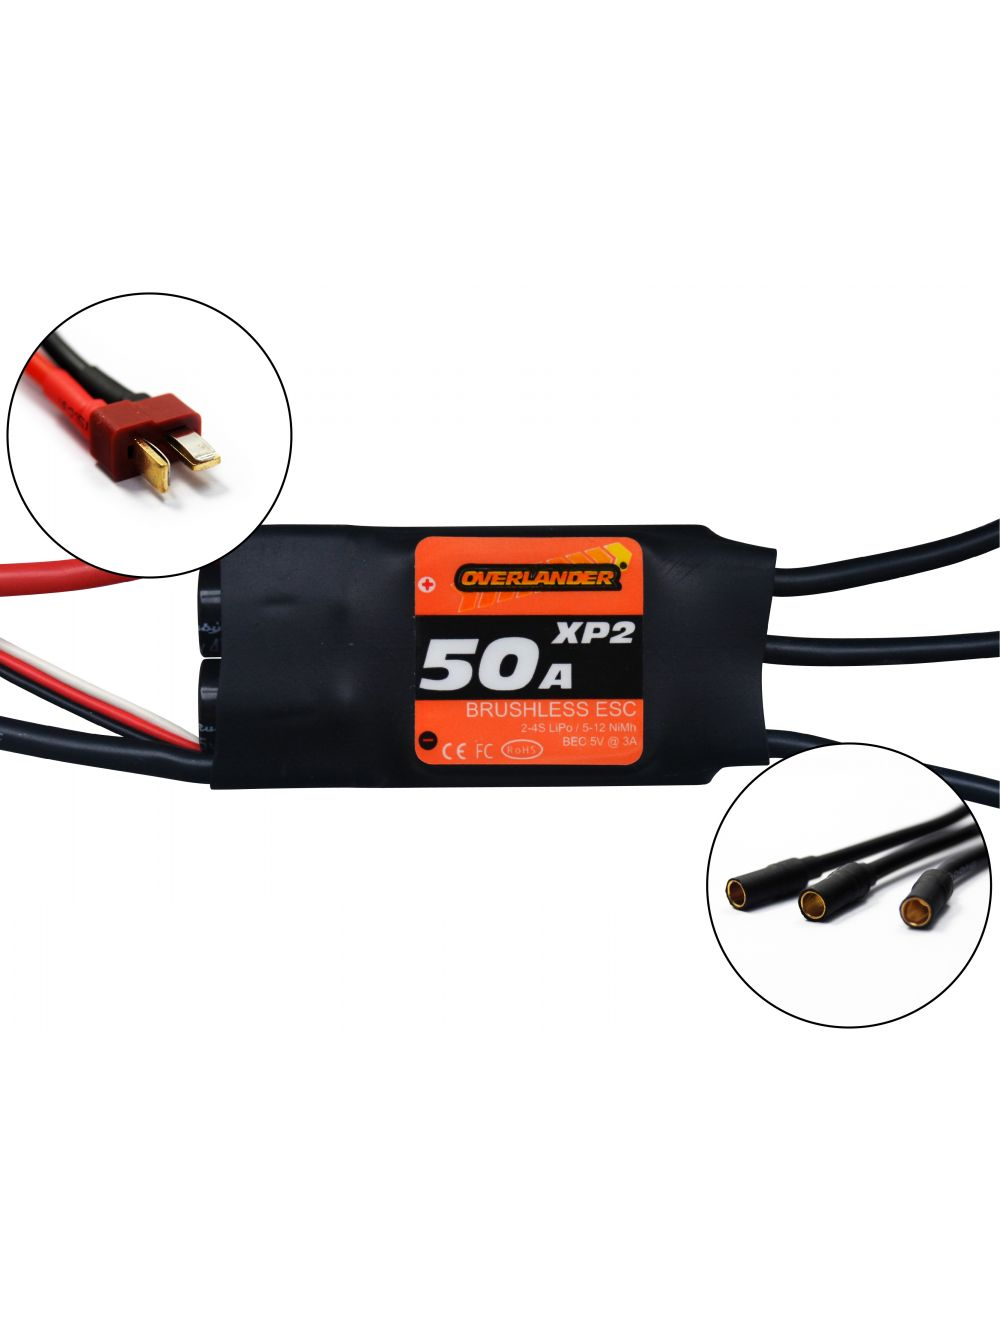 XP2 50A BRUSHLESS RTF SPEED CONTROLLER